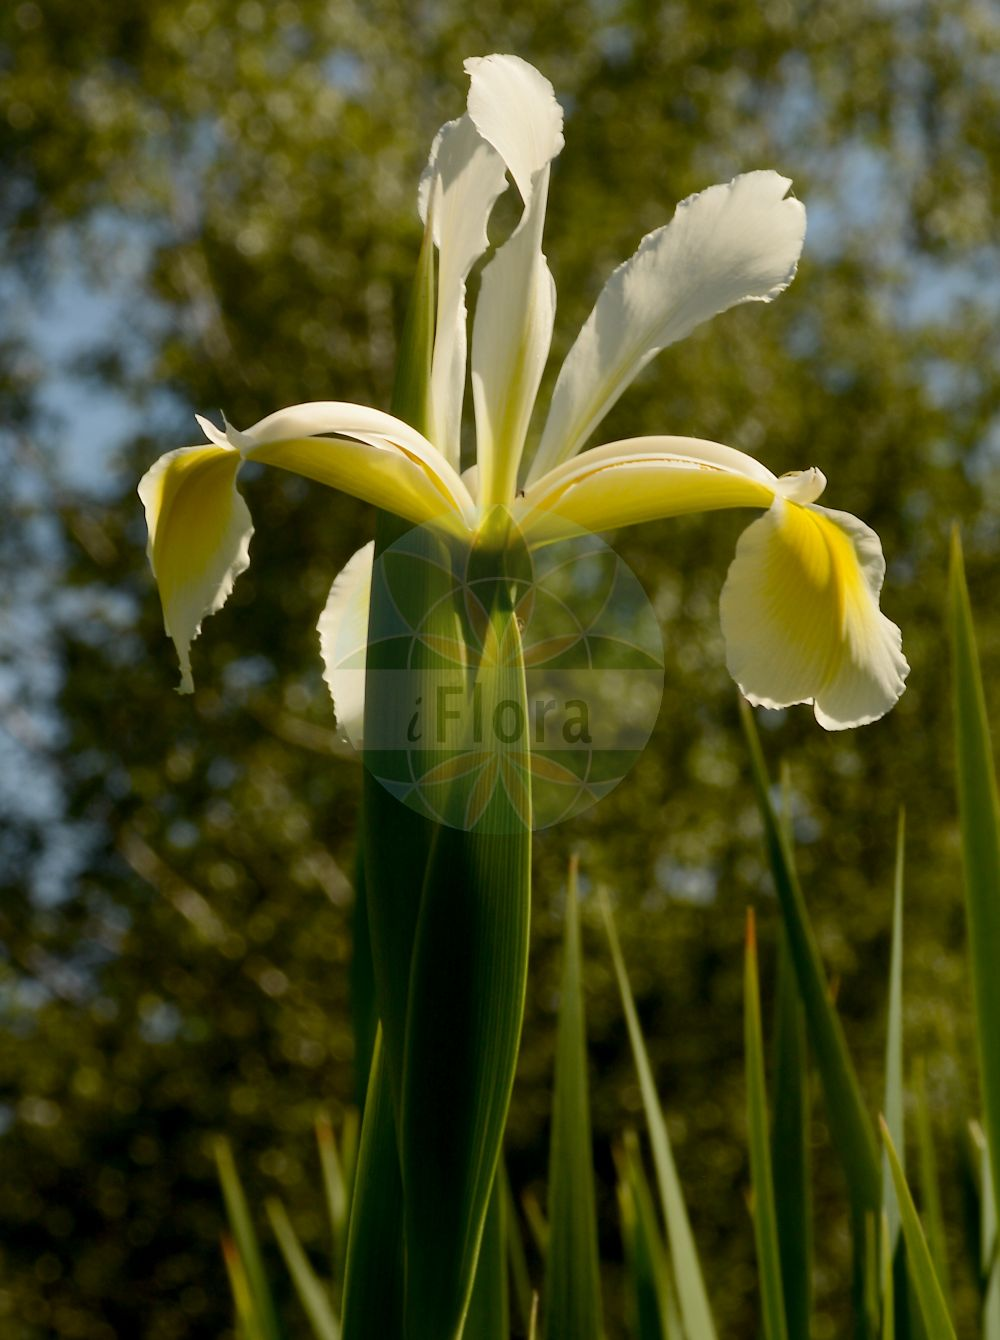 Foto von Iris orientalis. Das Bild zeigt Bluete. Das Foto wurde in Besancon, Bourgogne-Franche-Comté (Praefektur), Frankreich aufgenommen. ---- Photo of Iris orientalis.The image is showing flower.The picture was taken in Besançon, Bourgogne-Franche-Comté. (Iris orientalis,Iris albida,Iris gigantea,Iris longipedicellata,Iris monnieri,Iris ochroleuca,Xiphion monnieri,Xyridion monnieri,Xyridion ochroleucum,Xyridion orientalis,Iris,Schwertlilie,Iris,Iridaceae,Schwertliliengewaechse,Iris family,Bluete,flower)